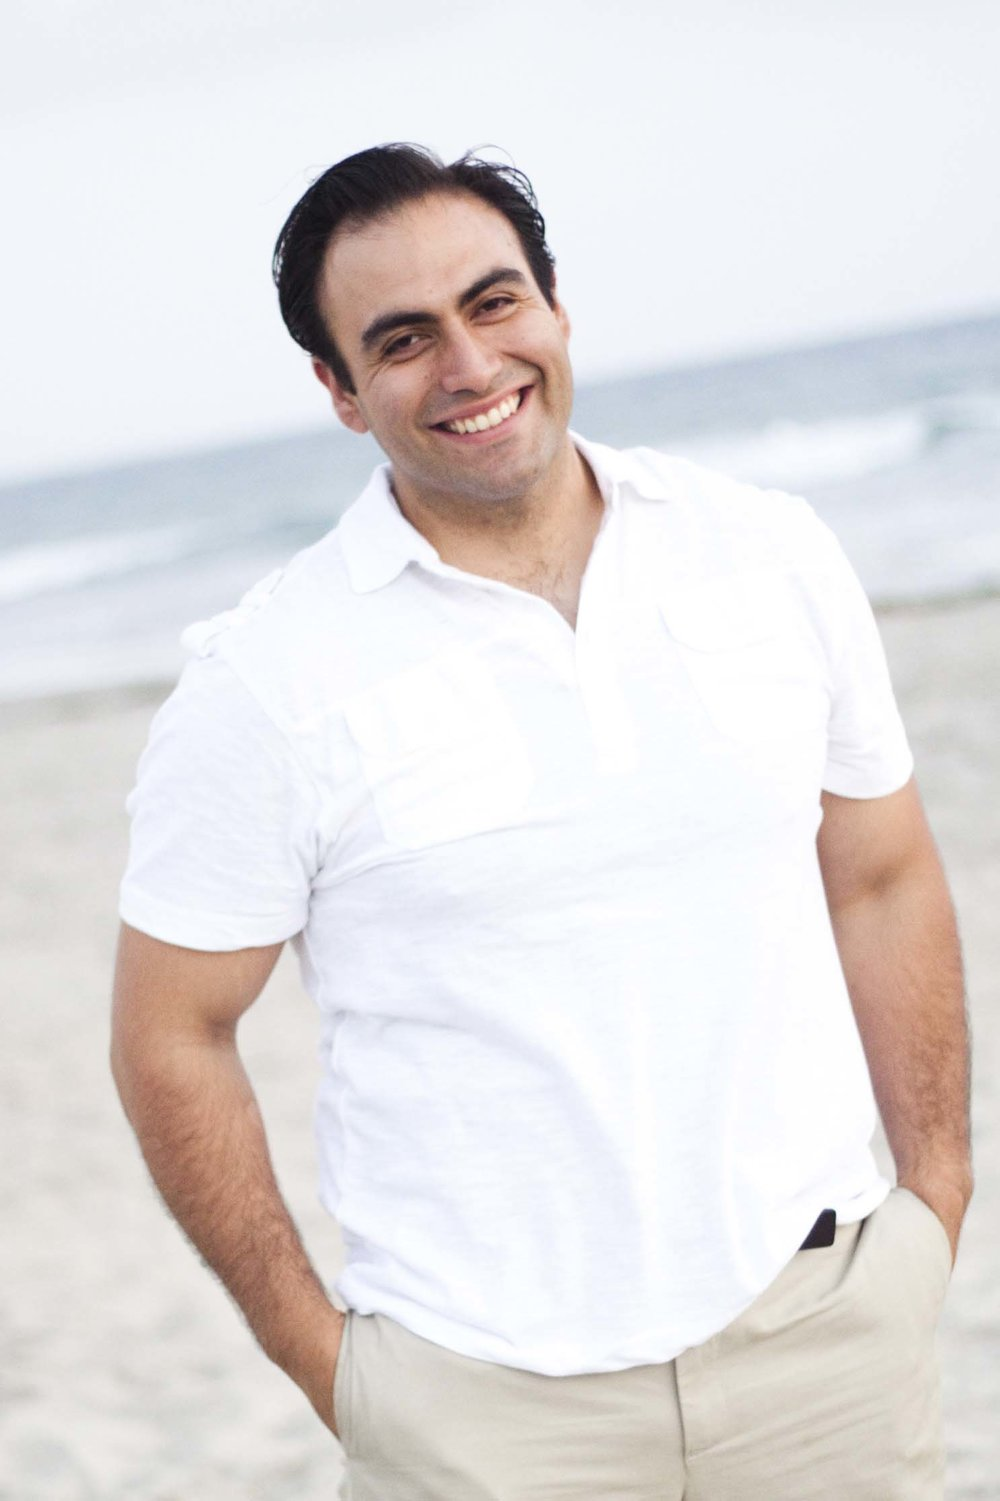 mens-headshot-lifestyle-casual-coronado-beach